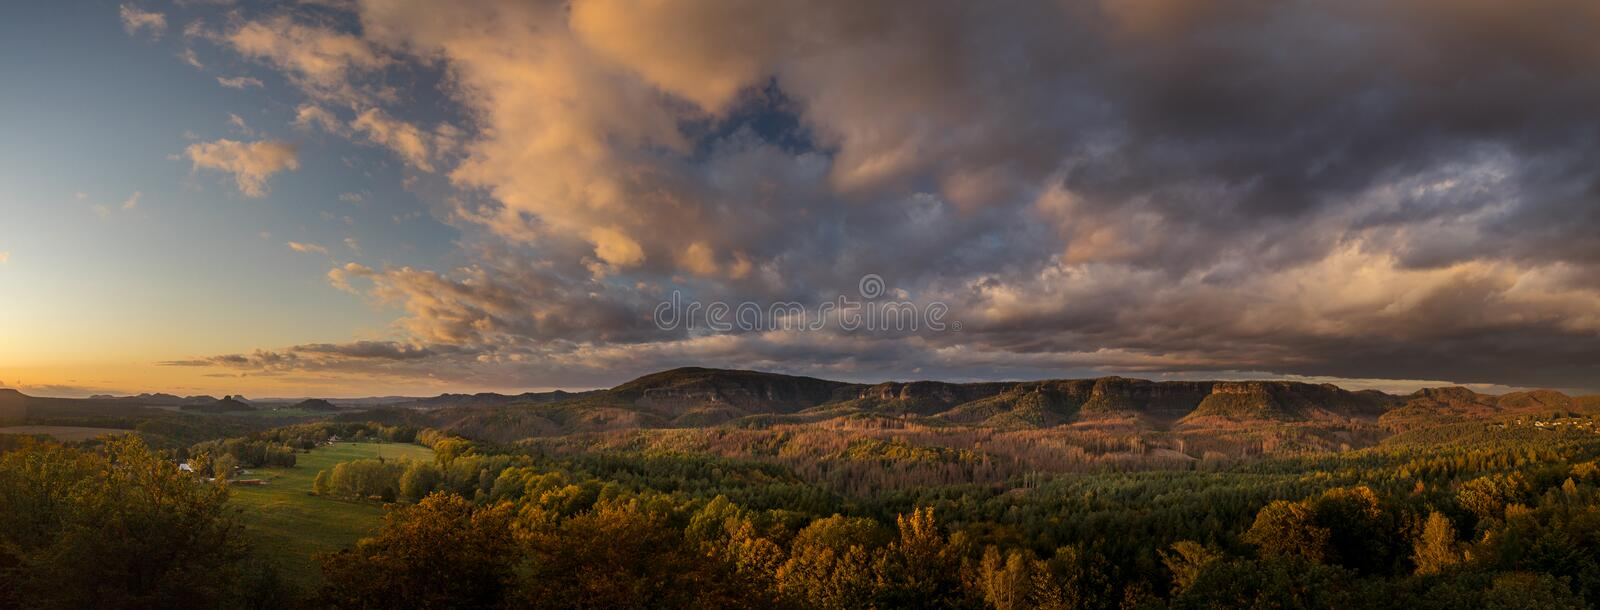 Autumn landscape at sunset - mountains, forests and beautiful clouds illuminated by the setting sun stock photography